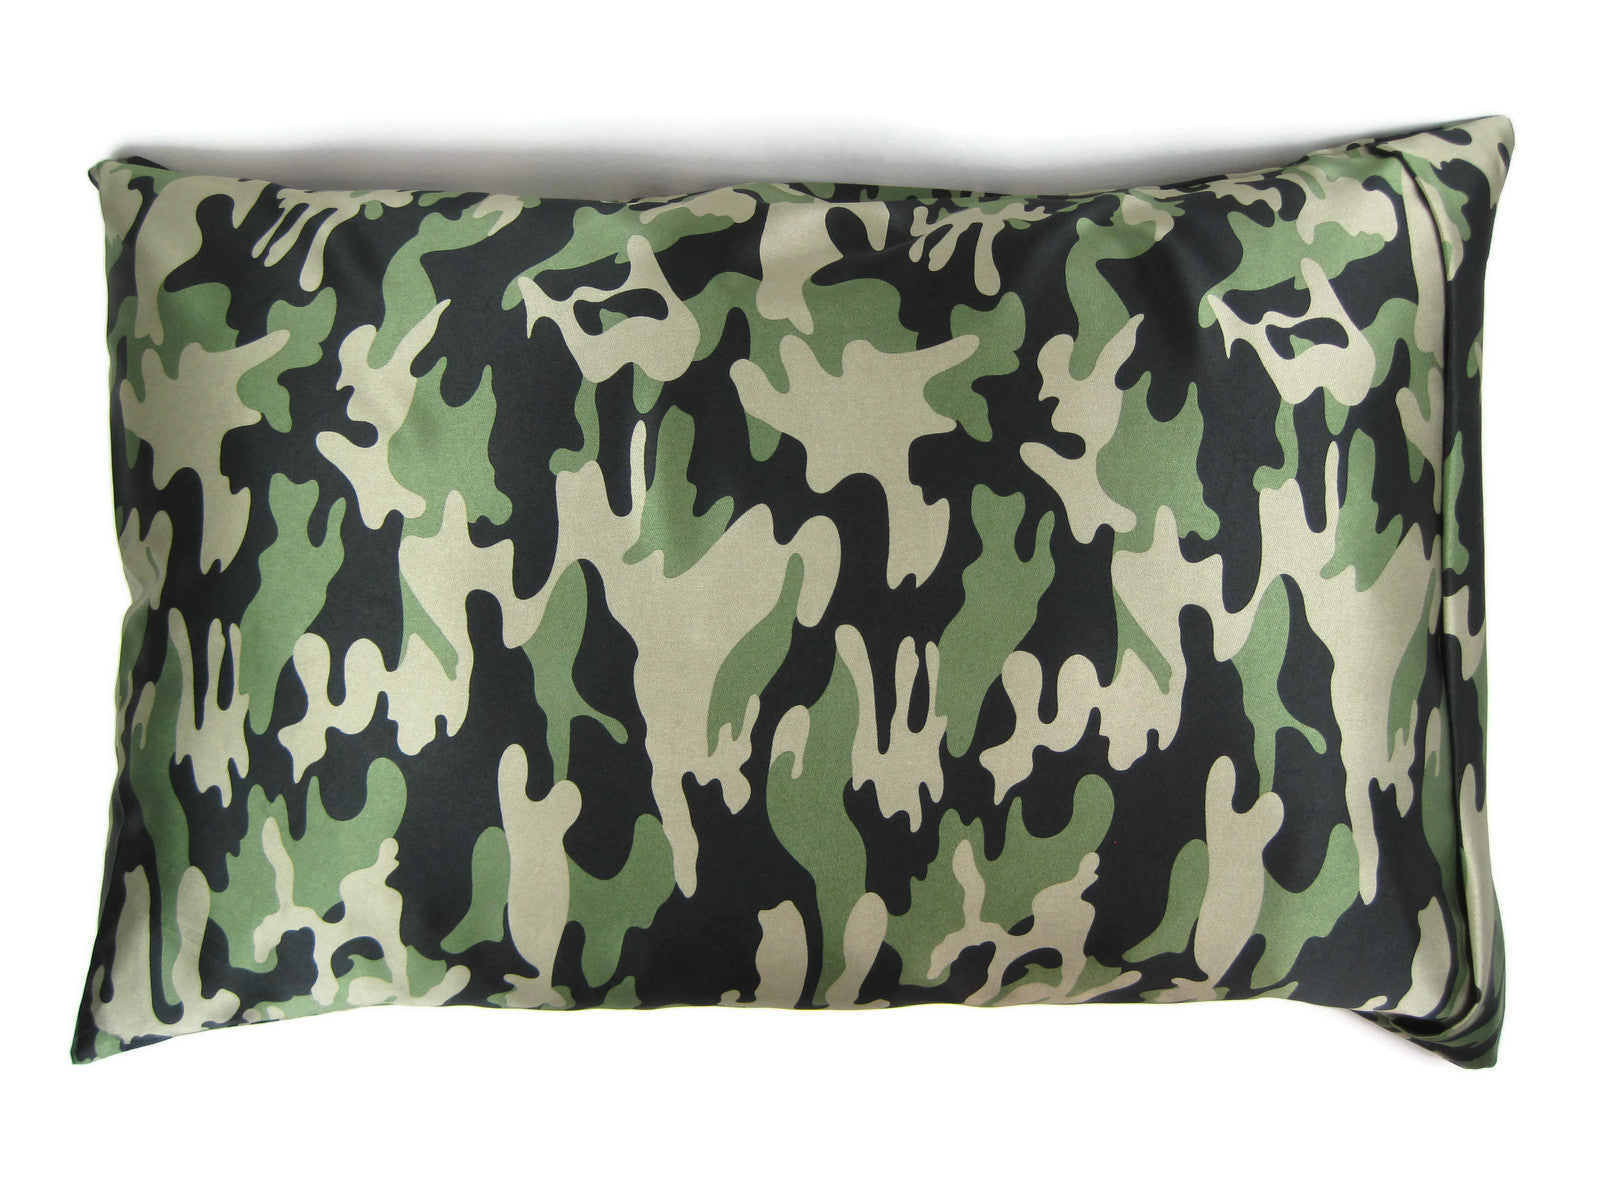 Luxe Satin Zippered Pillowcase - Camouflage